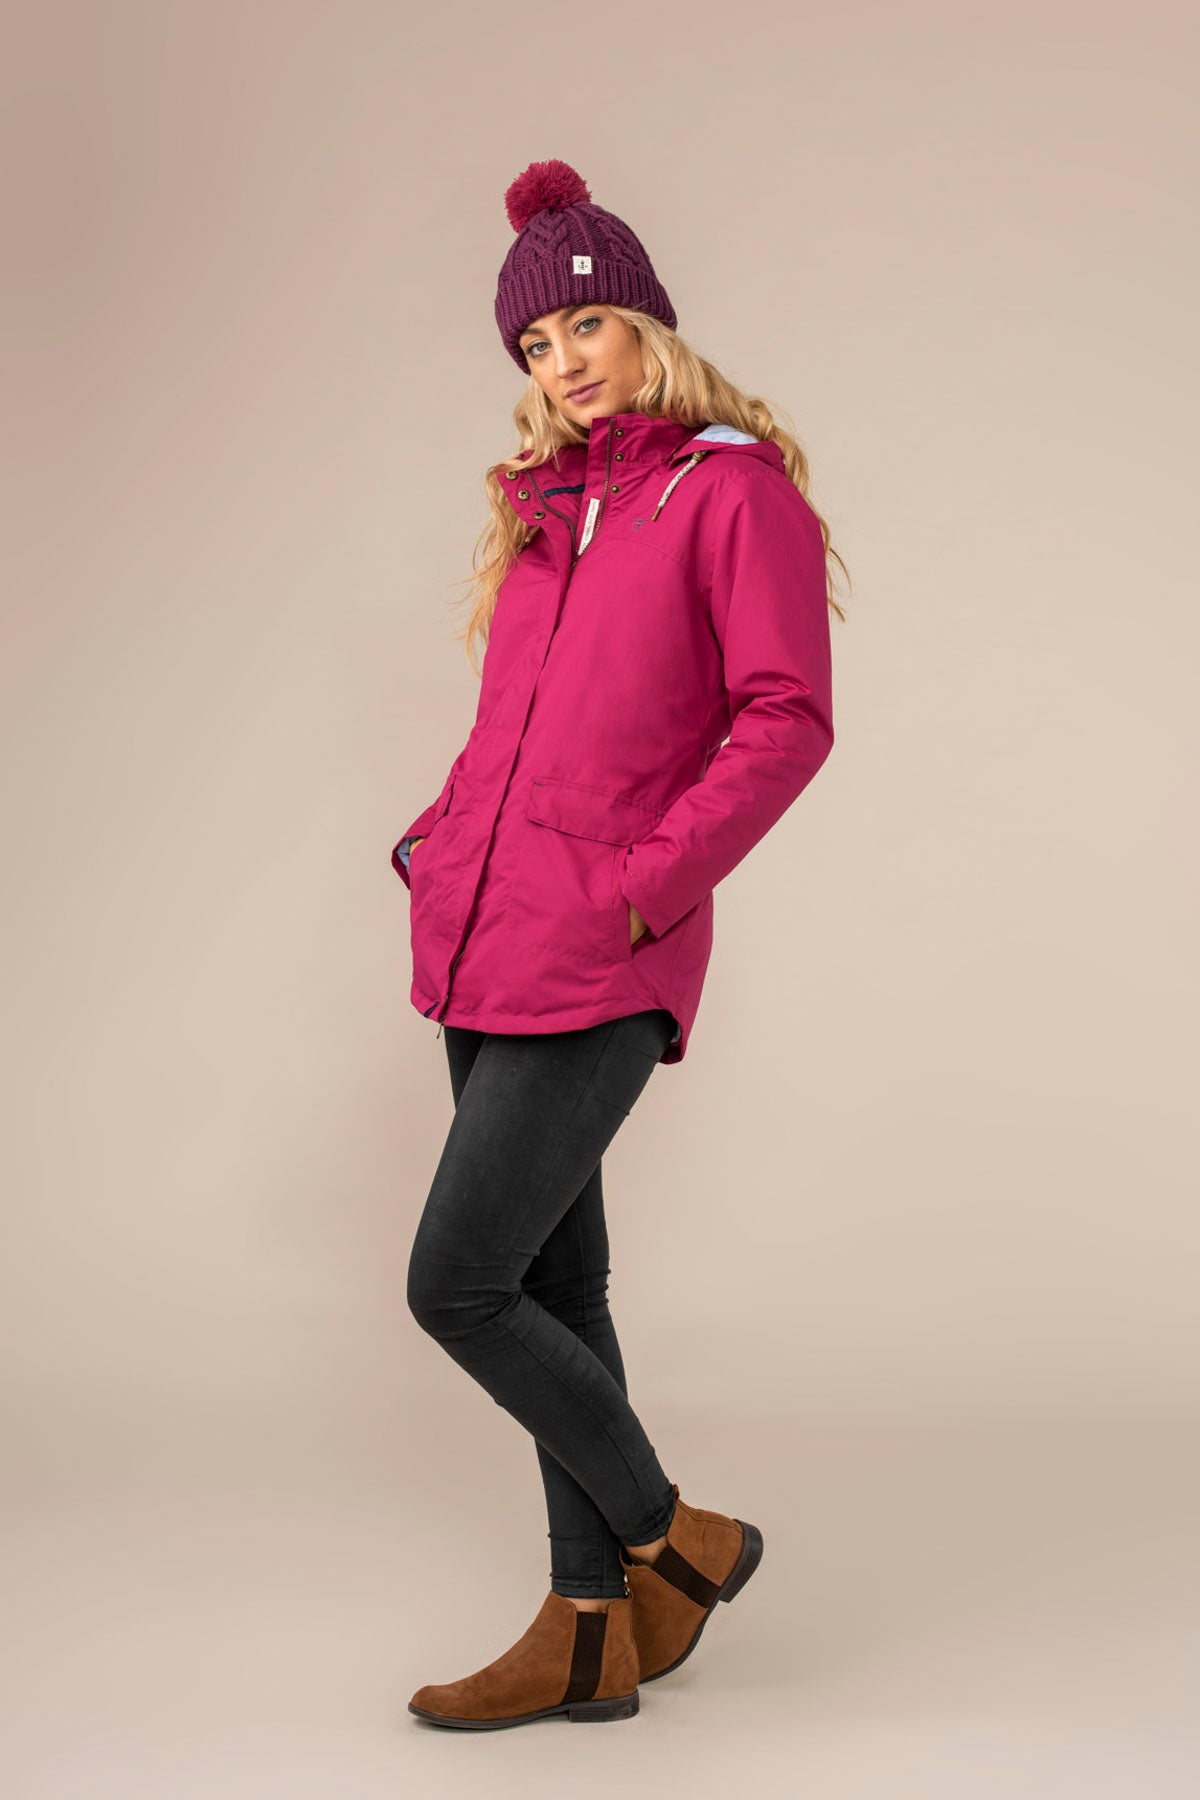 Iona Coat. Warm Women's Pink Raincoat | Lighthouse